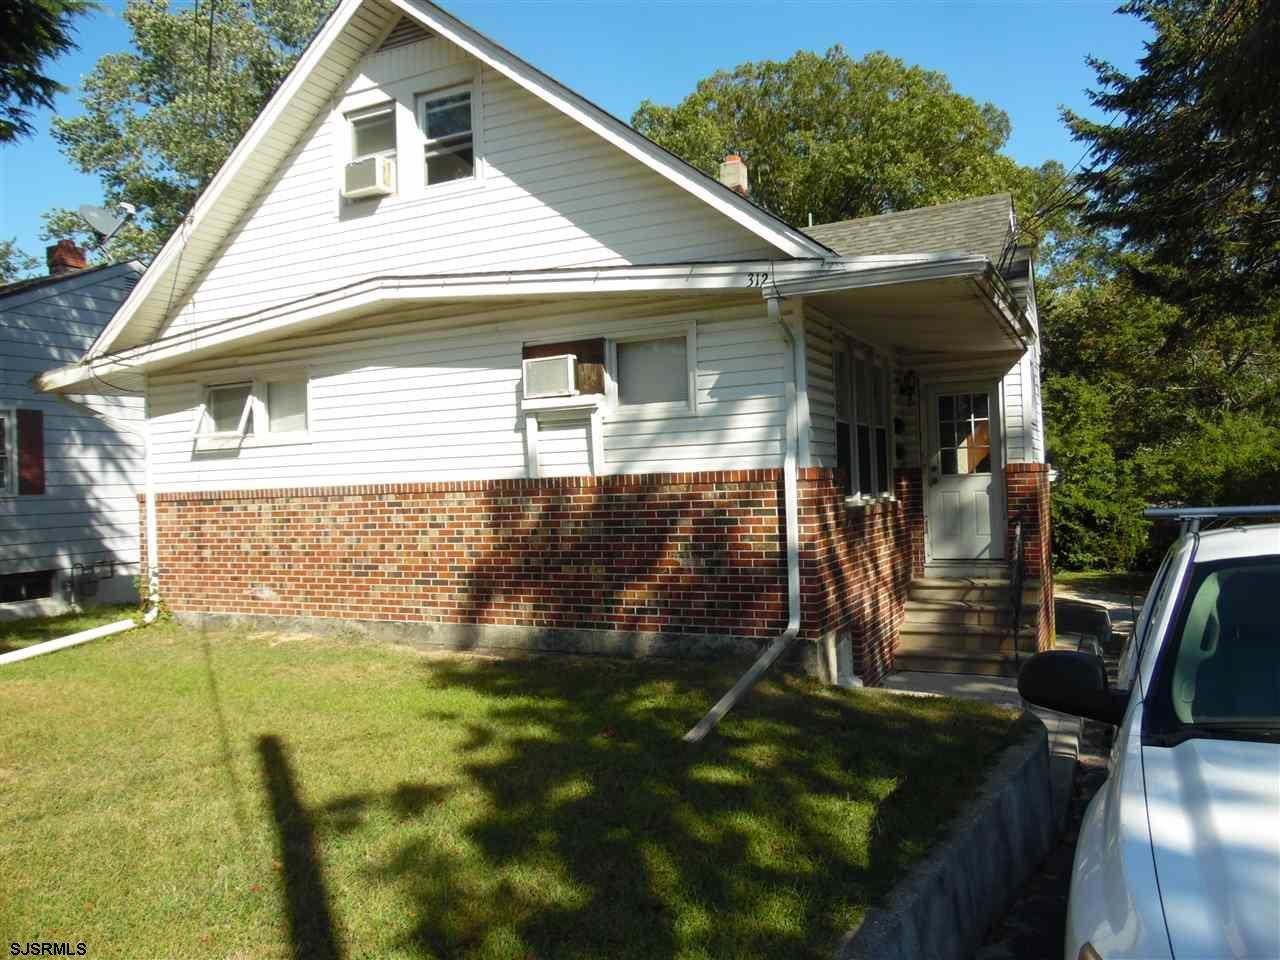 312 pitney Road, Absecon, NJ 08201 - #: 547056